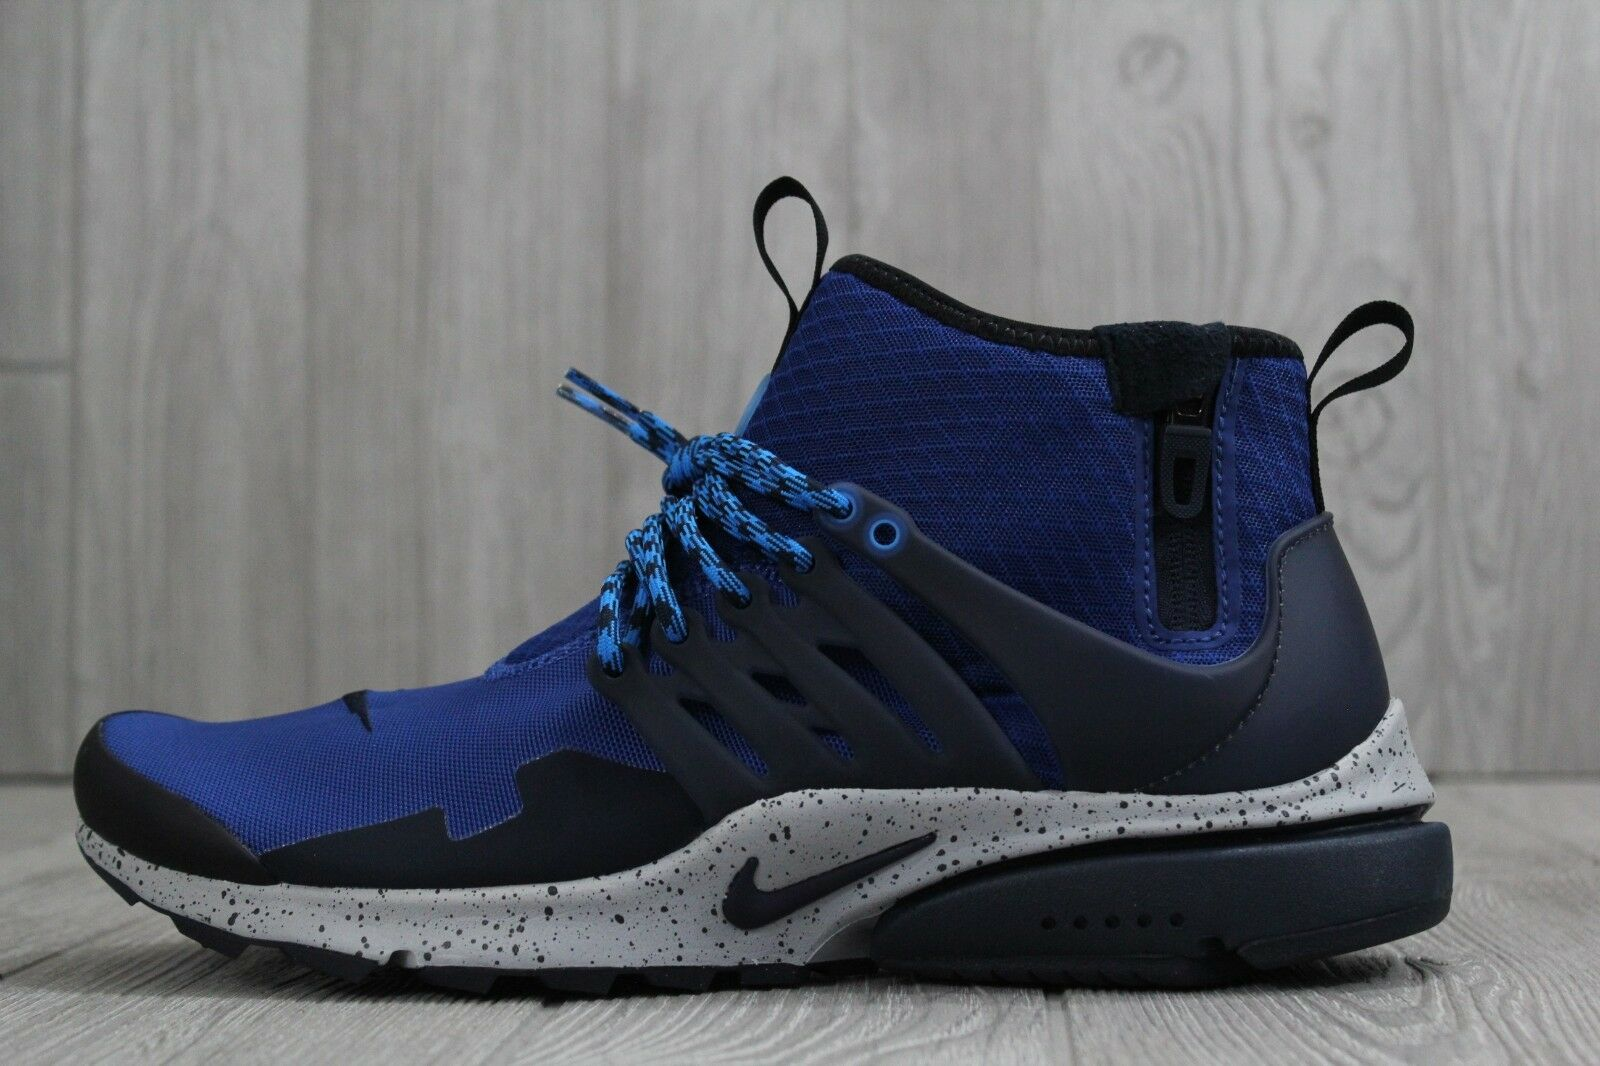 31 New Nike Air Presto Mid Utility Men's shoes Gym bluee Size 10 859524 401